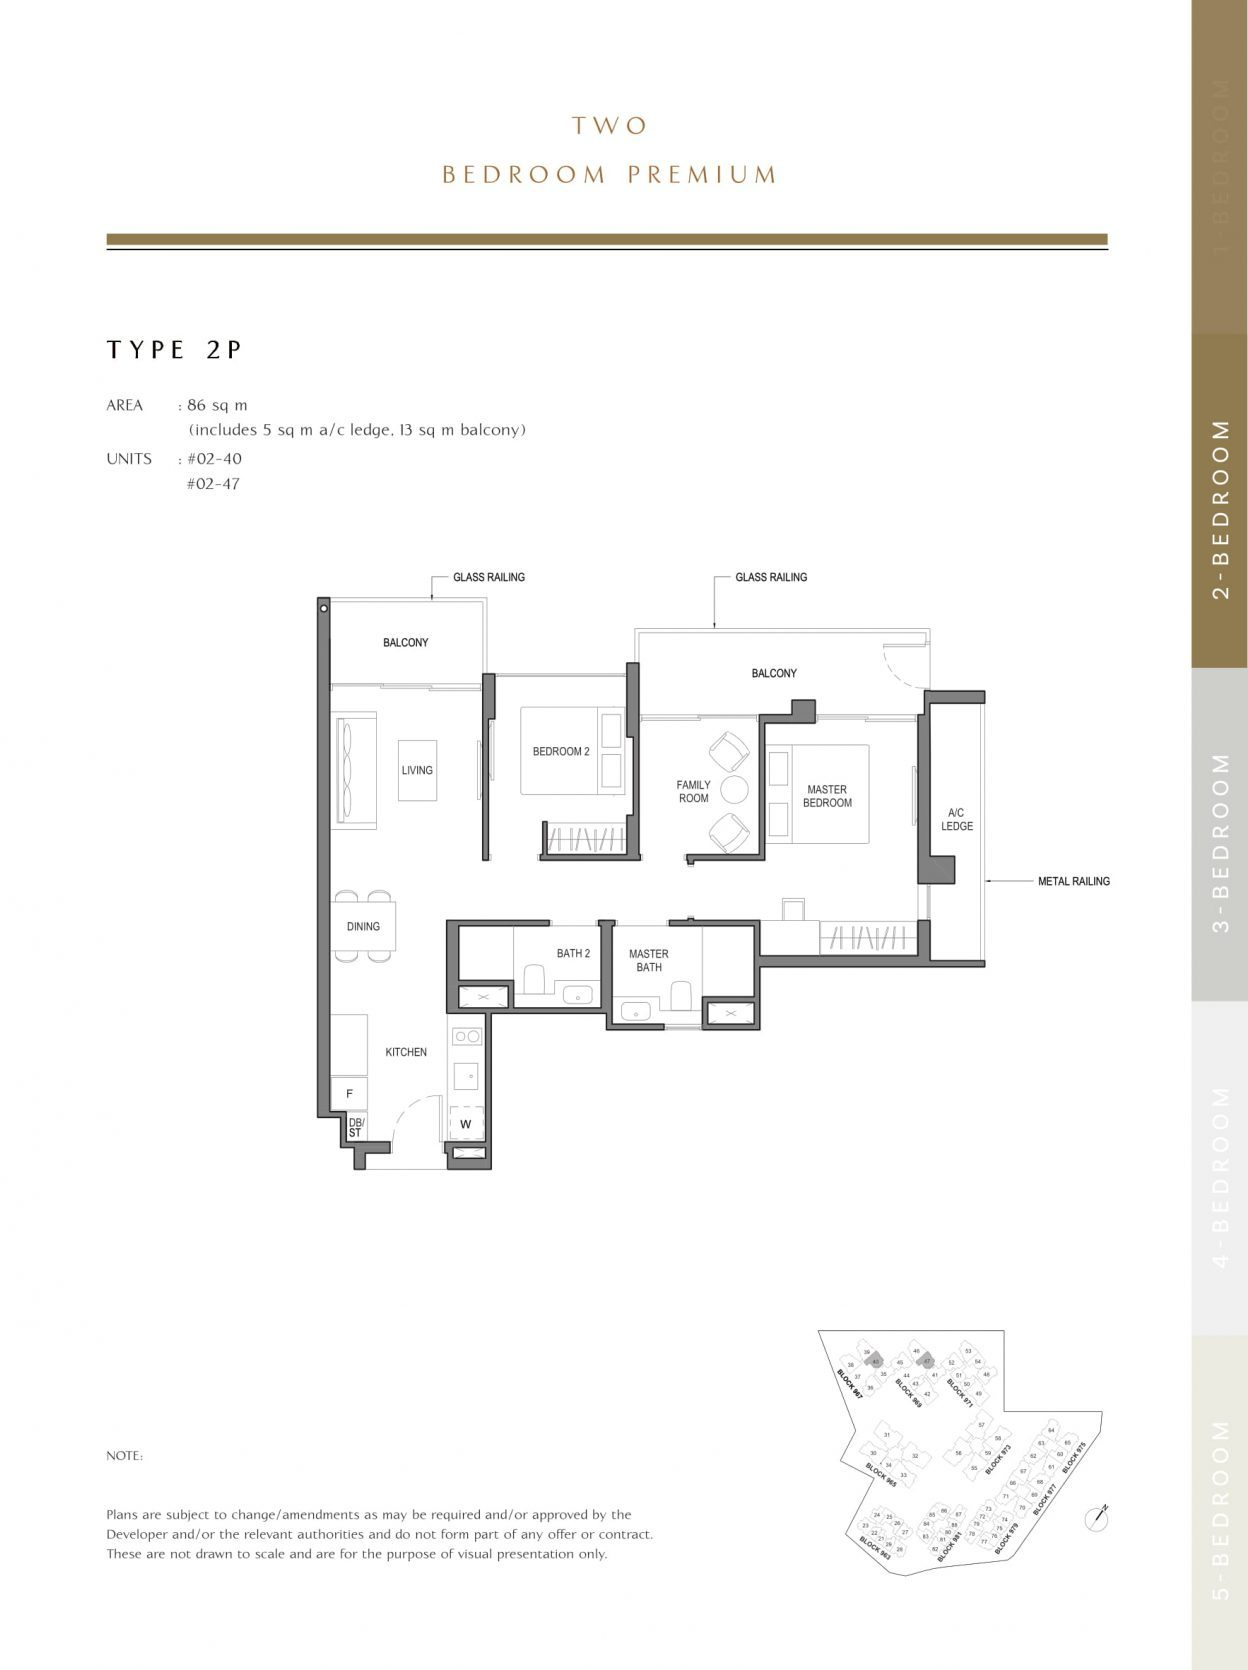 Parc Komo's two-bedroom premium type